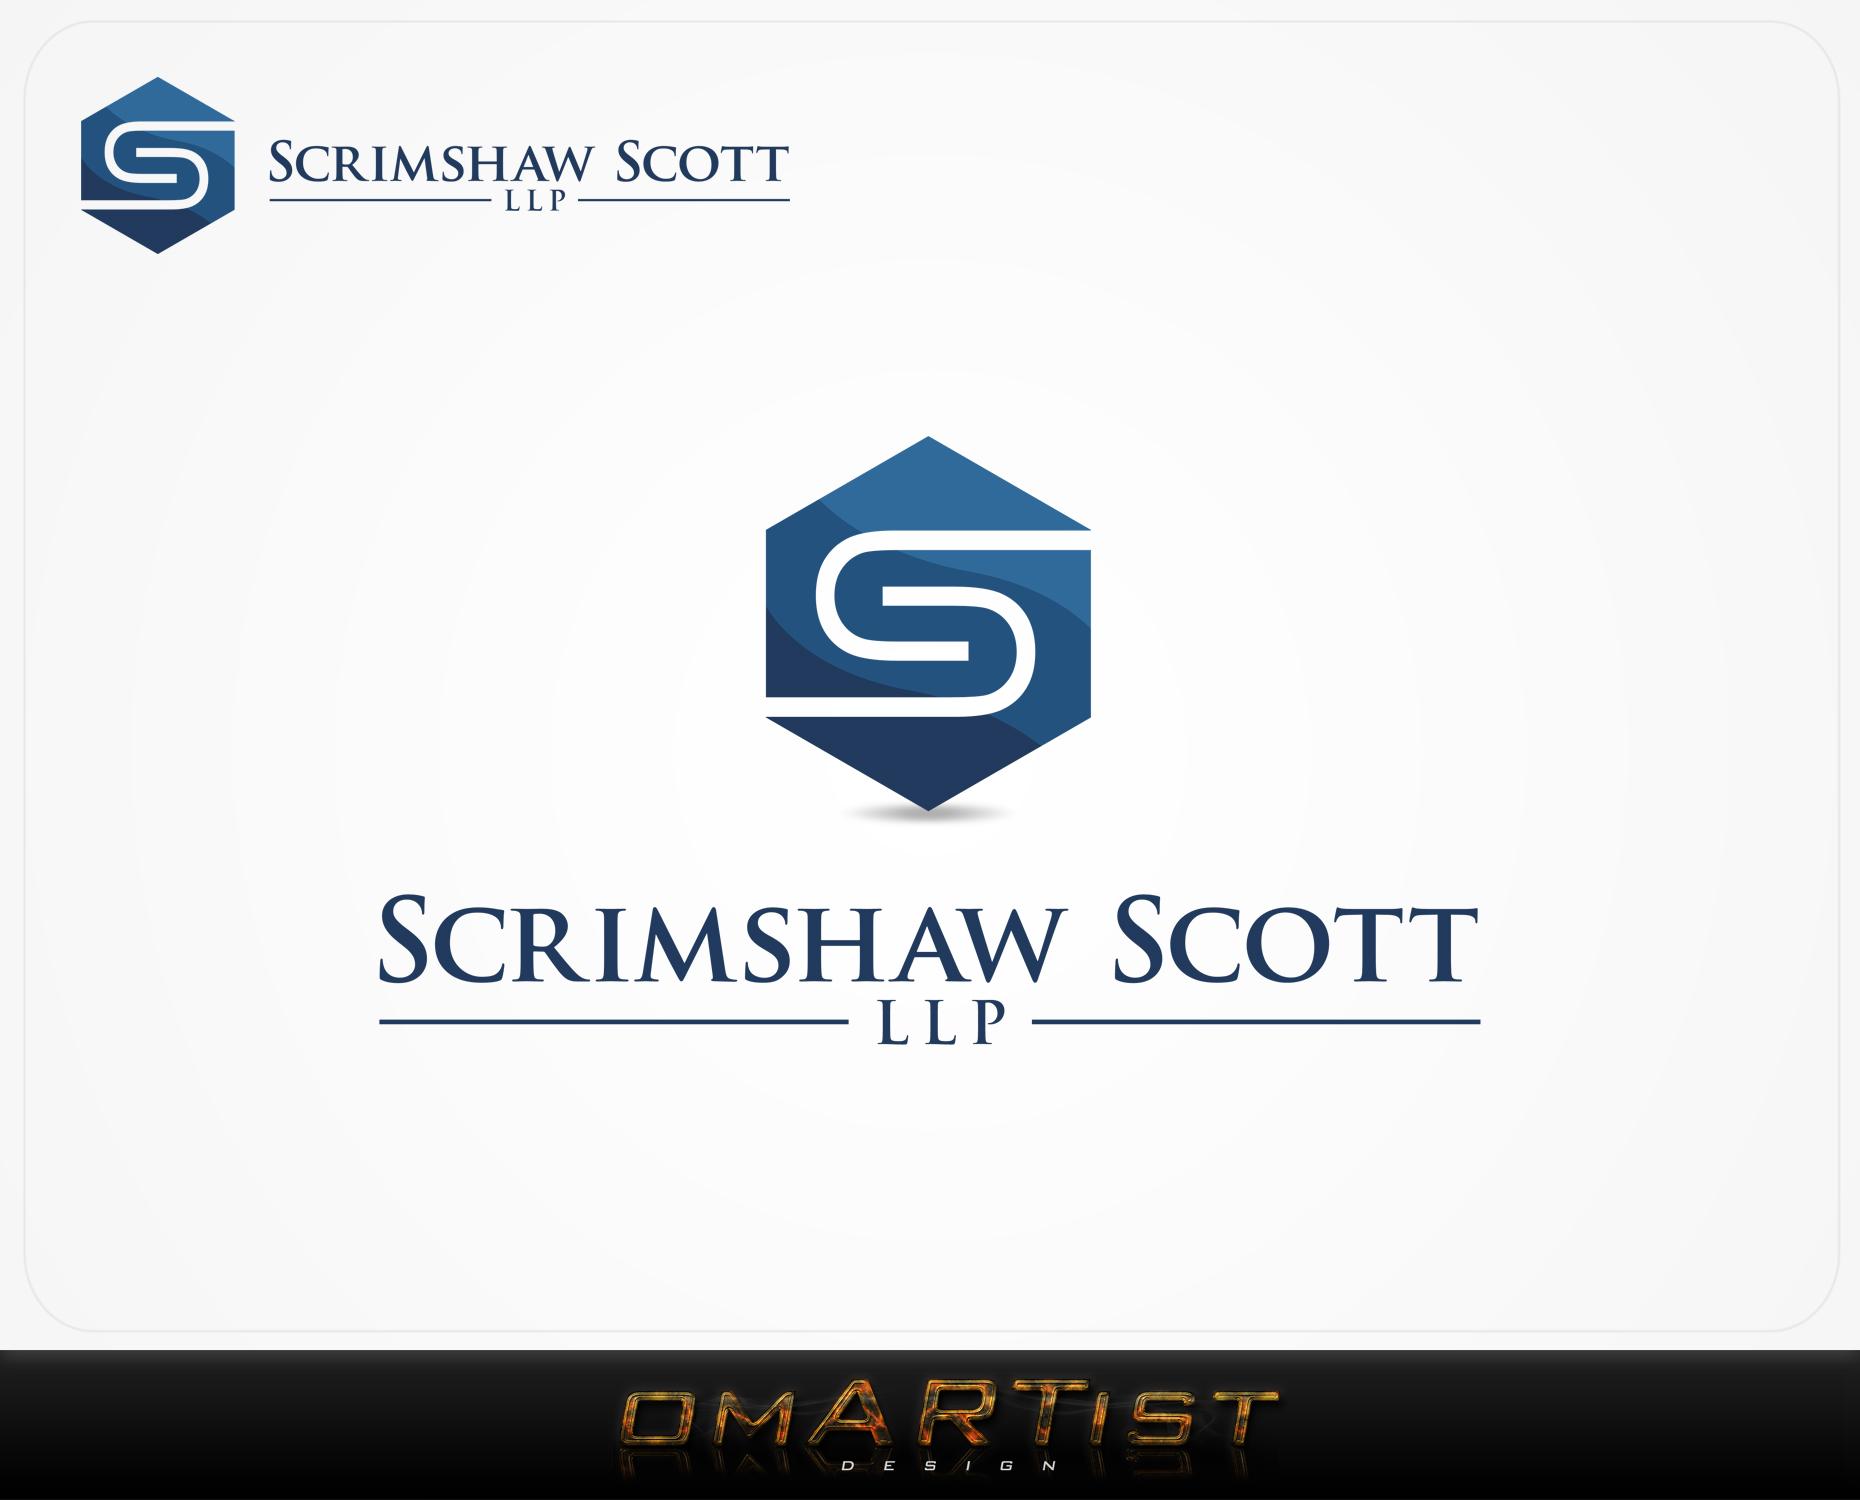 Logo Design by omARTist - Entry No. 58 in the Logo Design Contest Creative Logo Design for Scrimshaw Scott LLP.